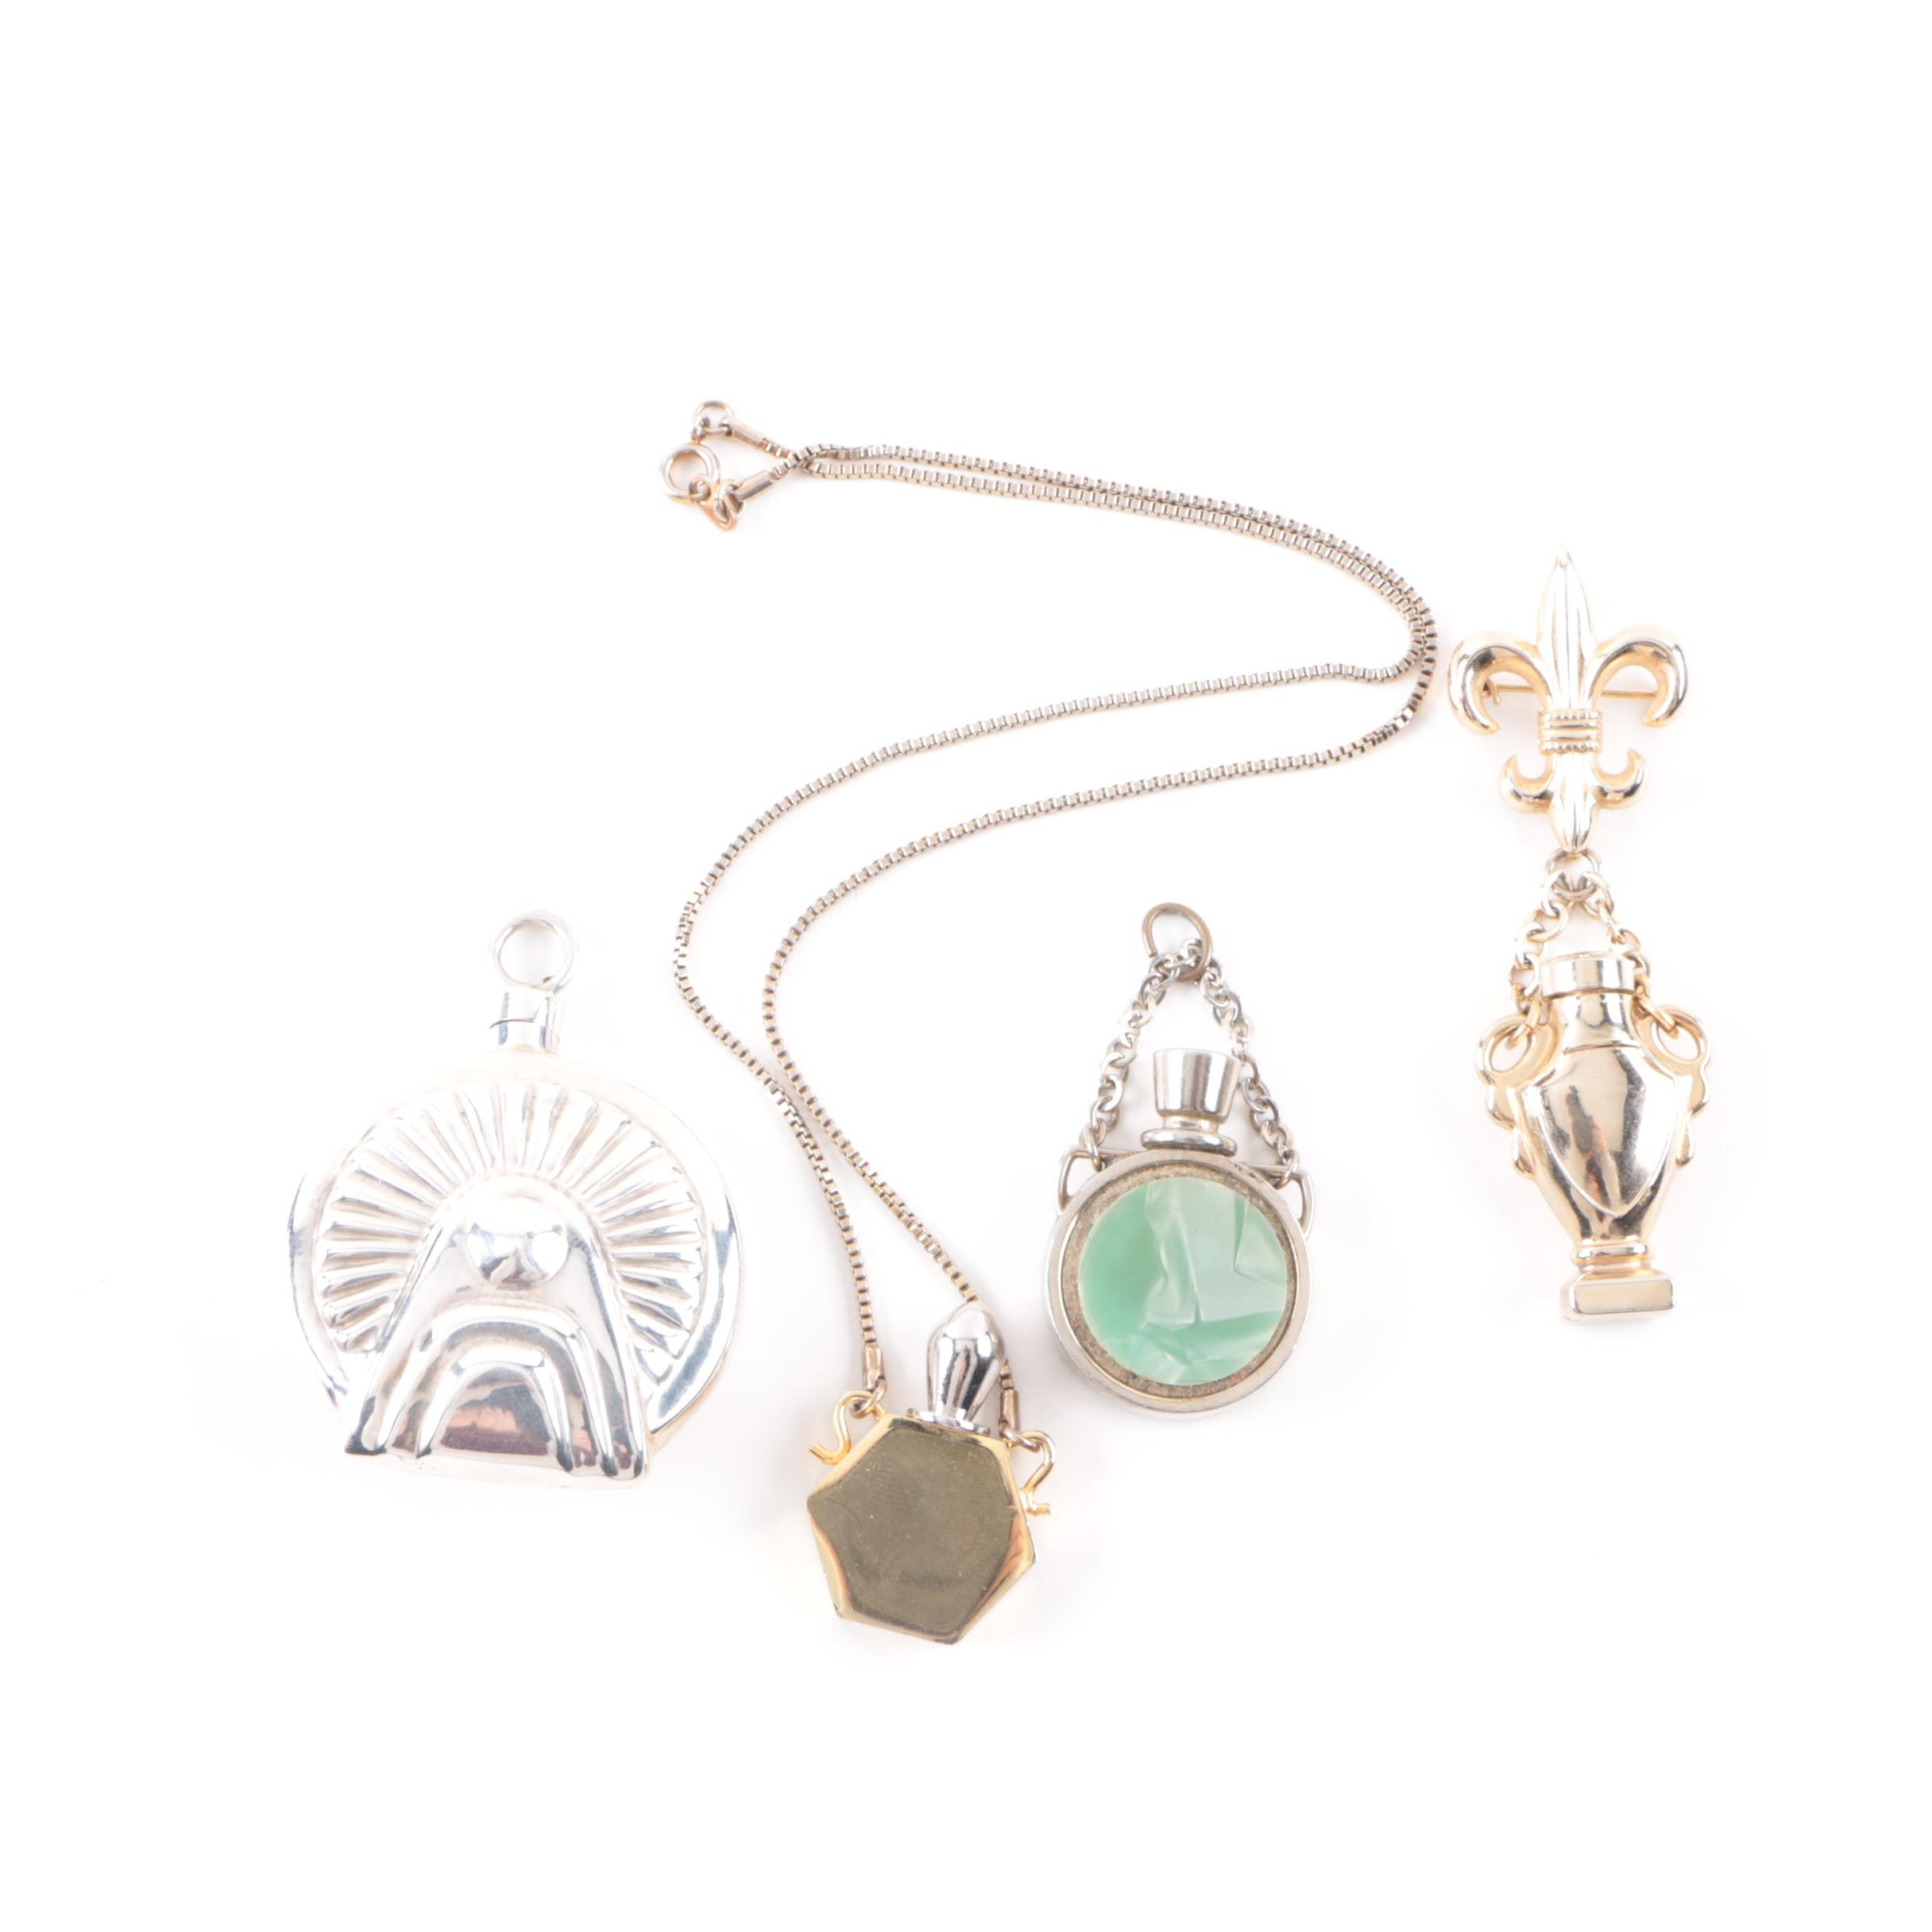 Vintage Perfume Bottle Jewelry Including Sterling Silver